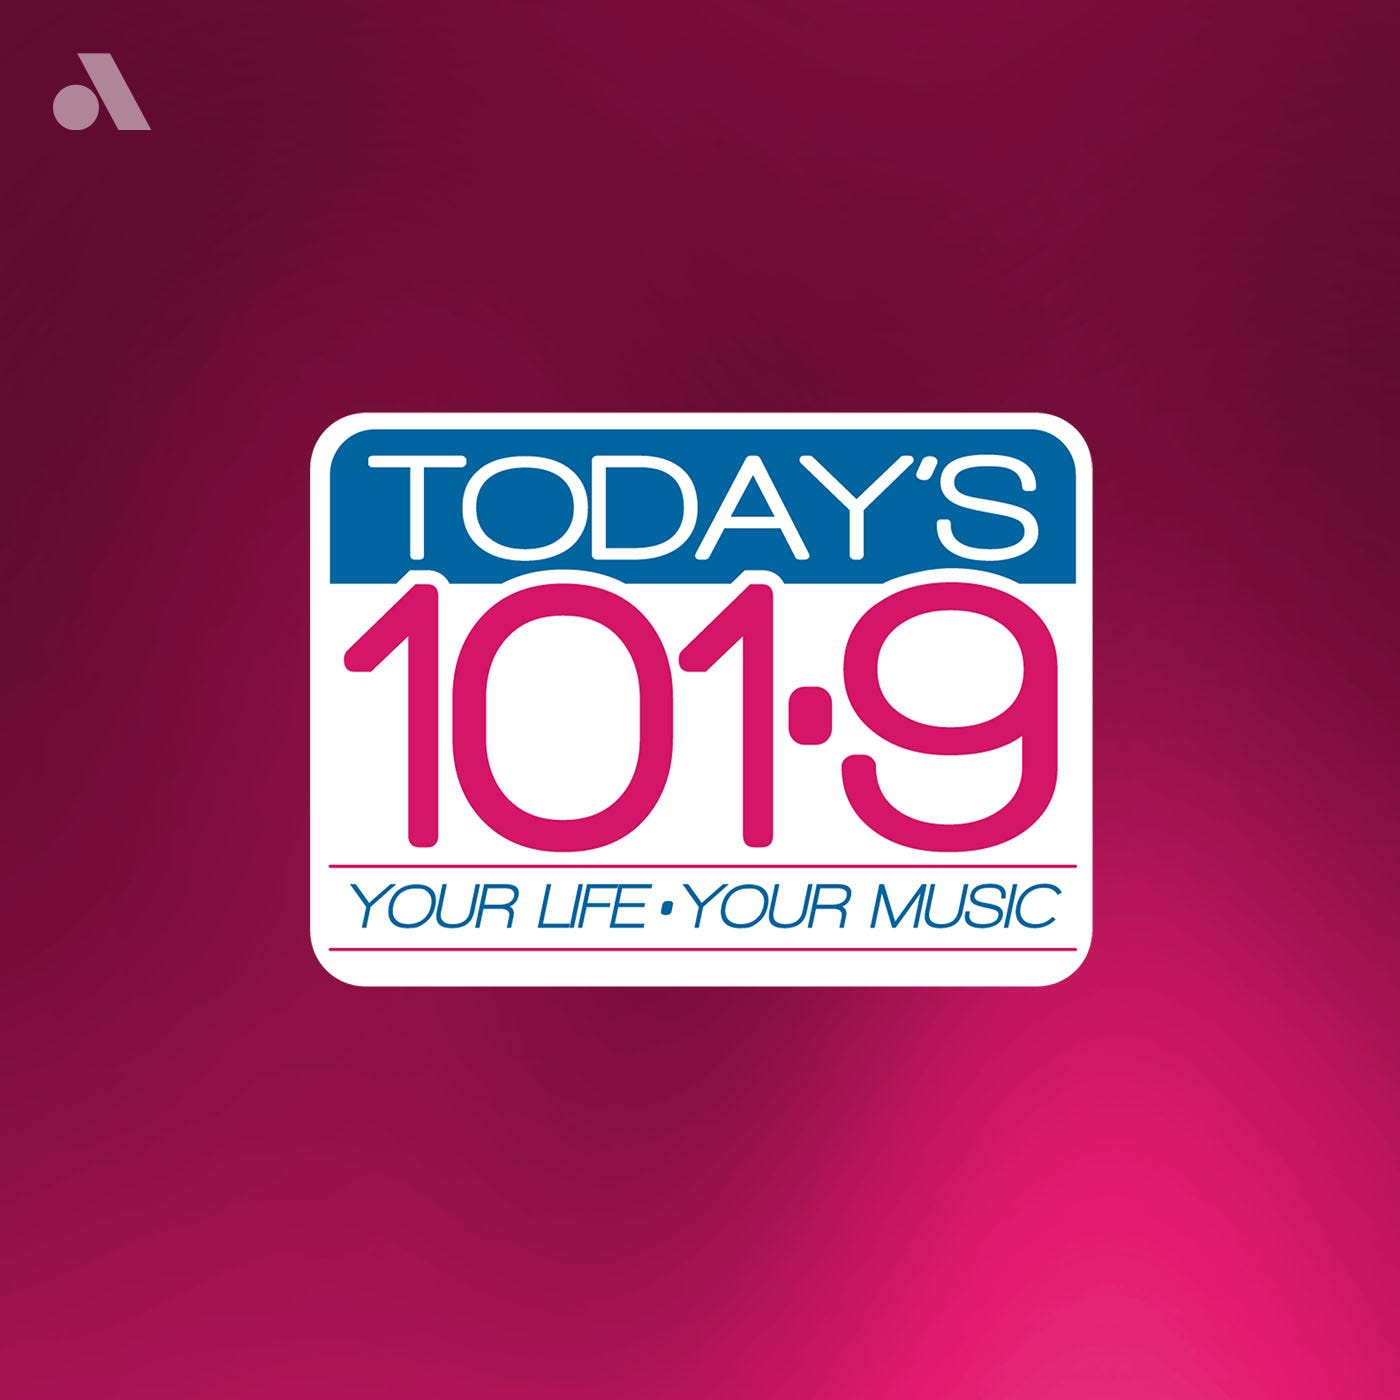 Today's 101.9